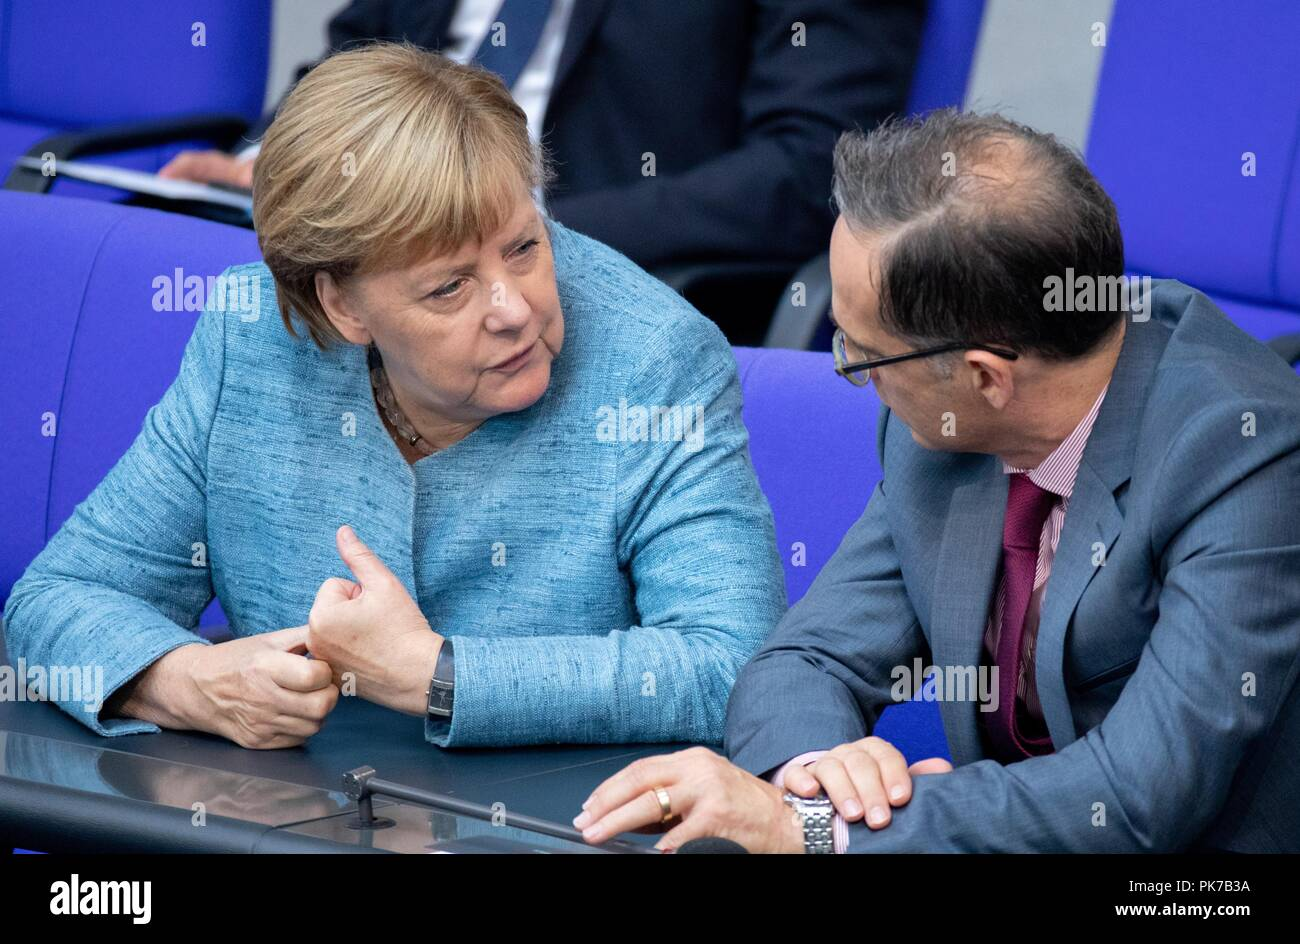 Berlin, Germany. 11 September 2018, Berlin: Chancellor Angela Merkel (CDU) and Heiko Maas (SPD), Foreign Minister, are talking at the plenary session in the German Bundestag. The main topic of the 47th session of the 19th legislative period is the Federal Government's draft budget 2019 and the federal budget 2018 to 2022. Photo: Bernd von Jutrczenka/dpa Credit: dpa picture alliance/Alamy Live News - Stock Image